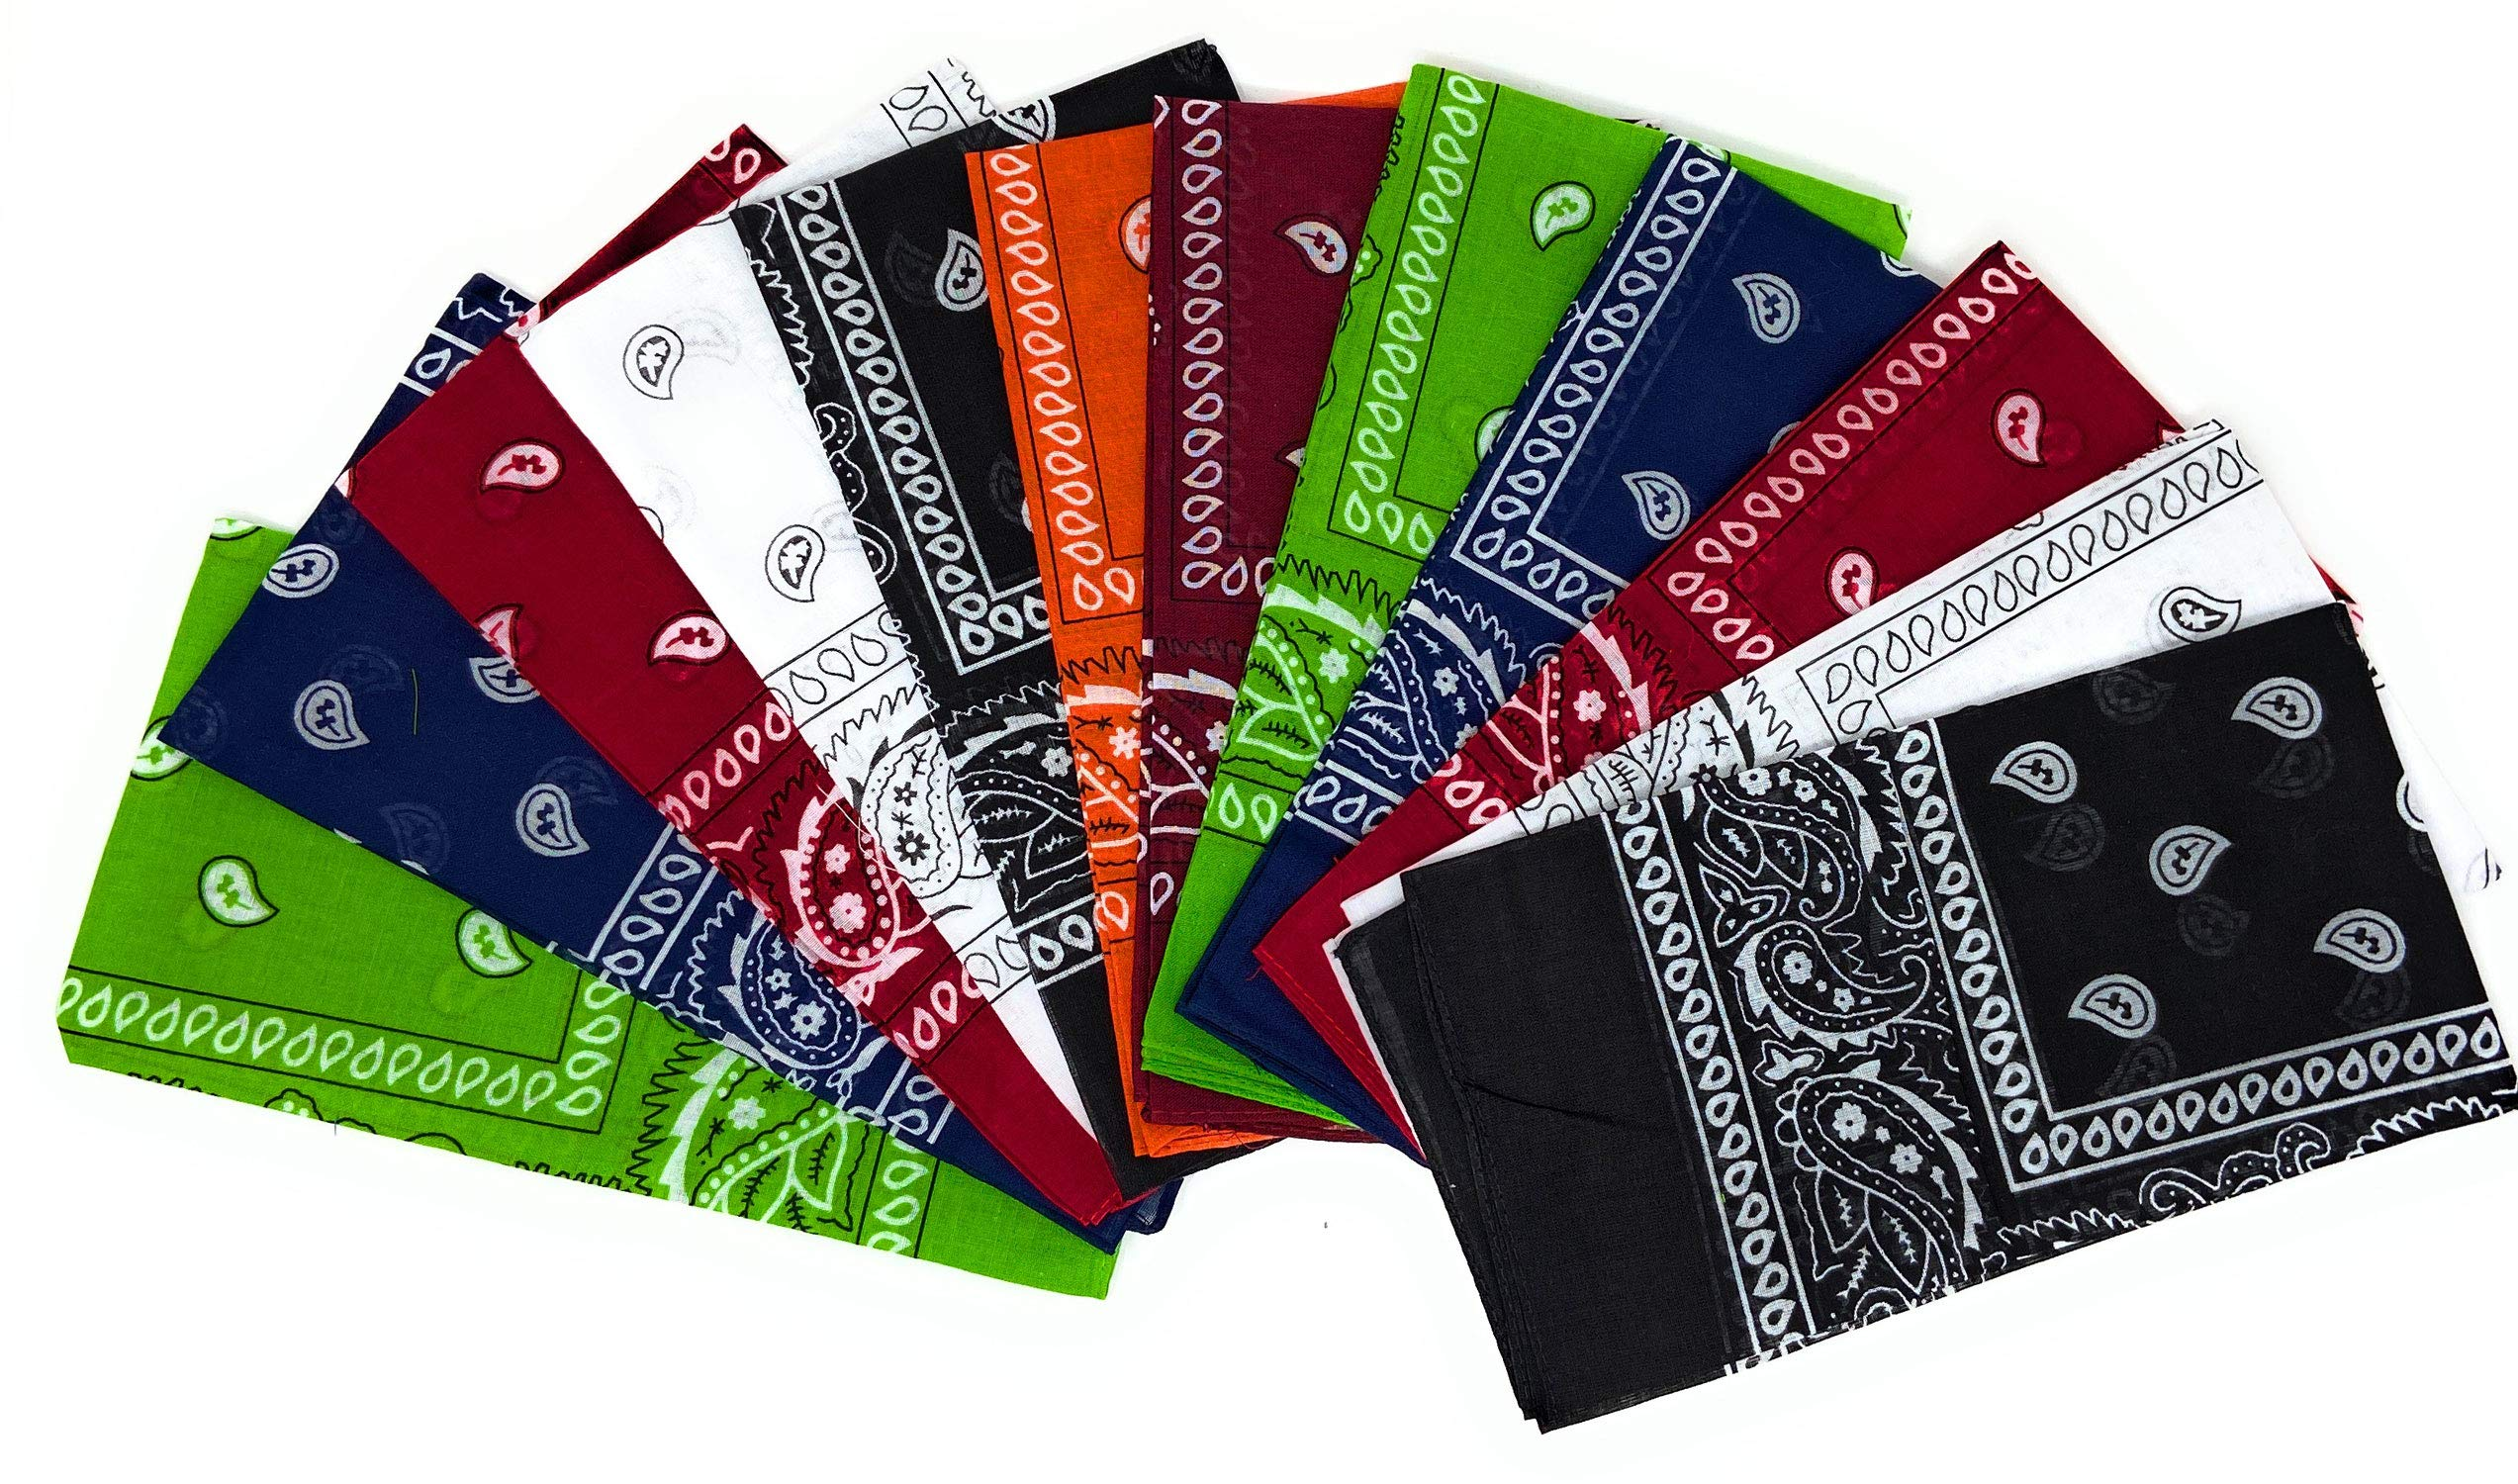 100% Cotton Bandanas For Men - 12 Pack Multi-Use Scarf Headband Headwrap